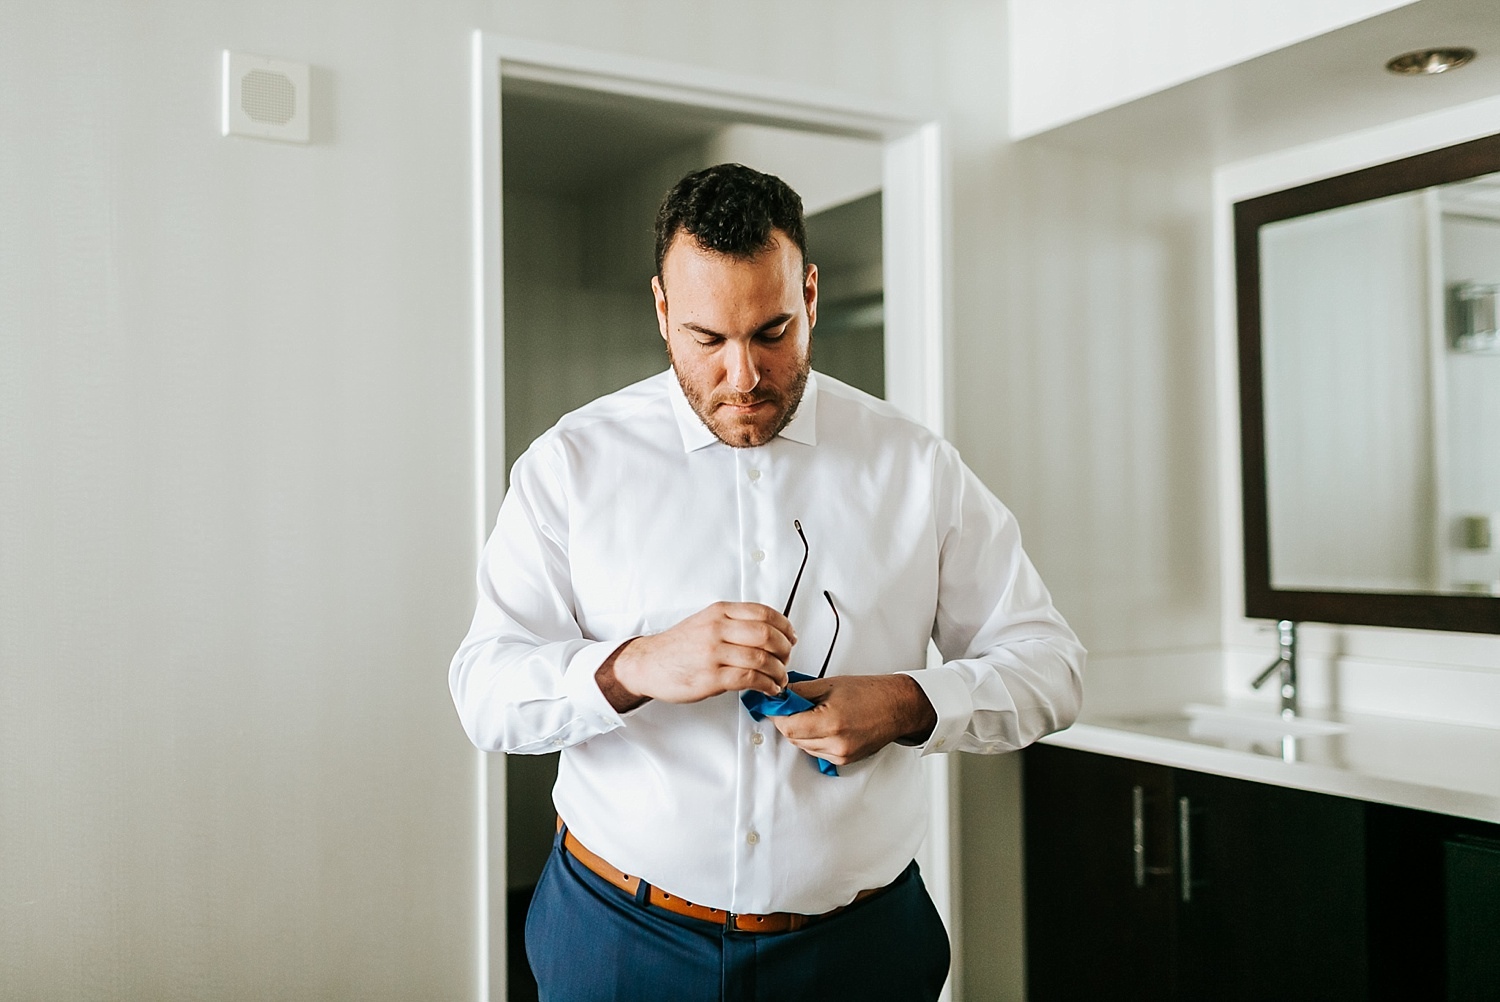 Summer wedding groom prep photos at the Courtyard by Marriott Philadephia Downtown by Danfredo Photos + Films